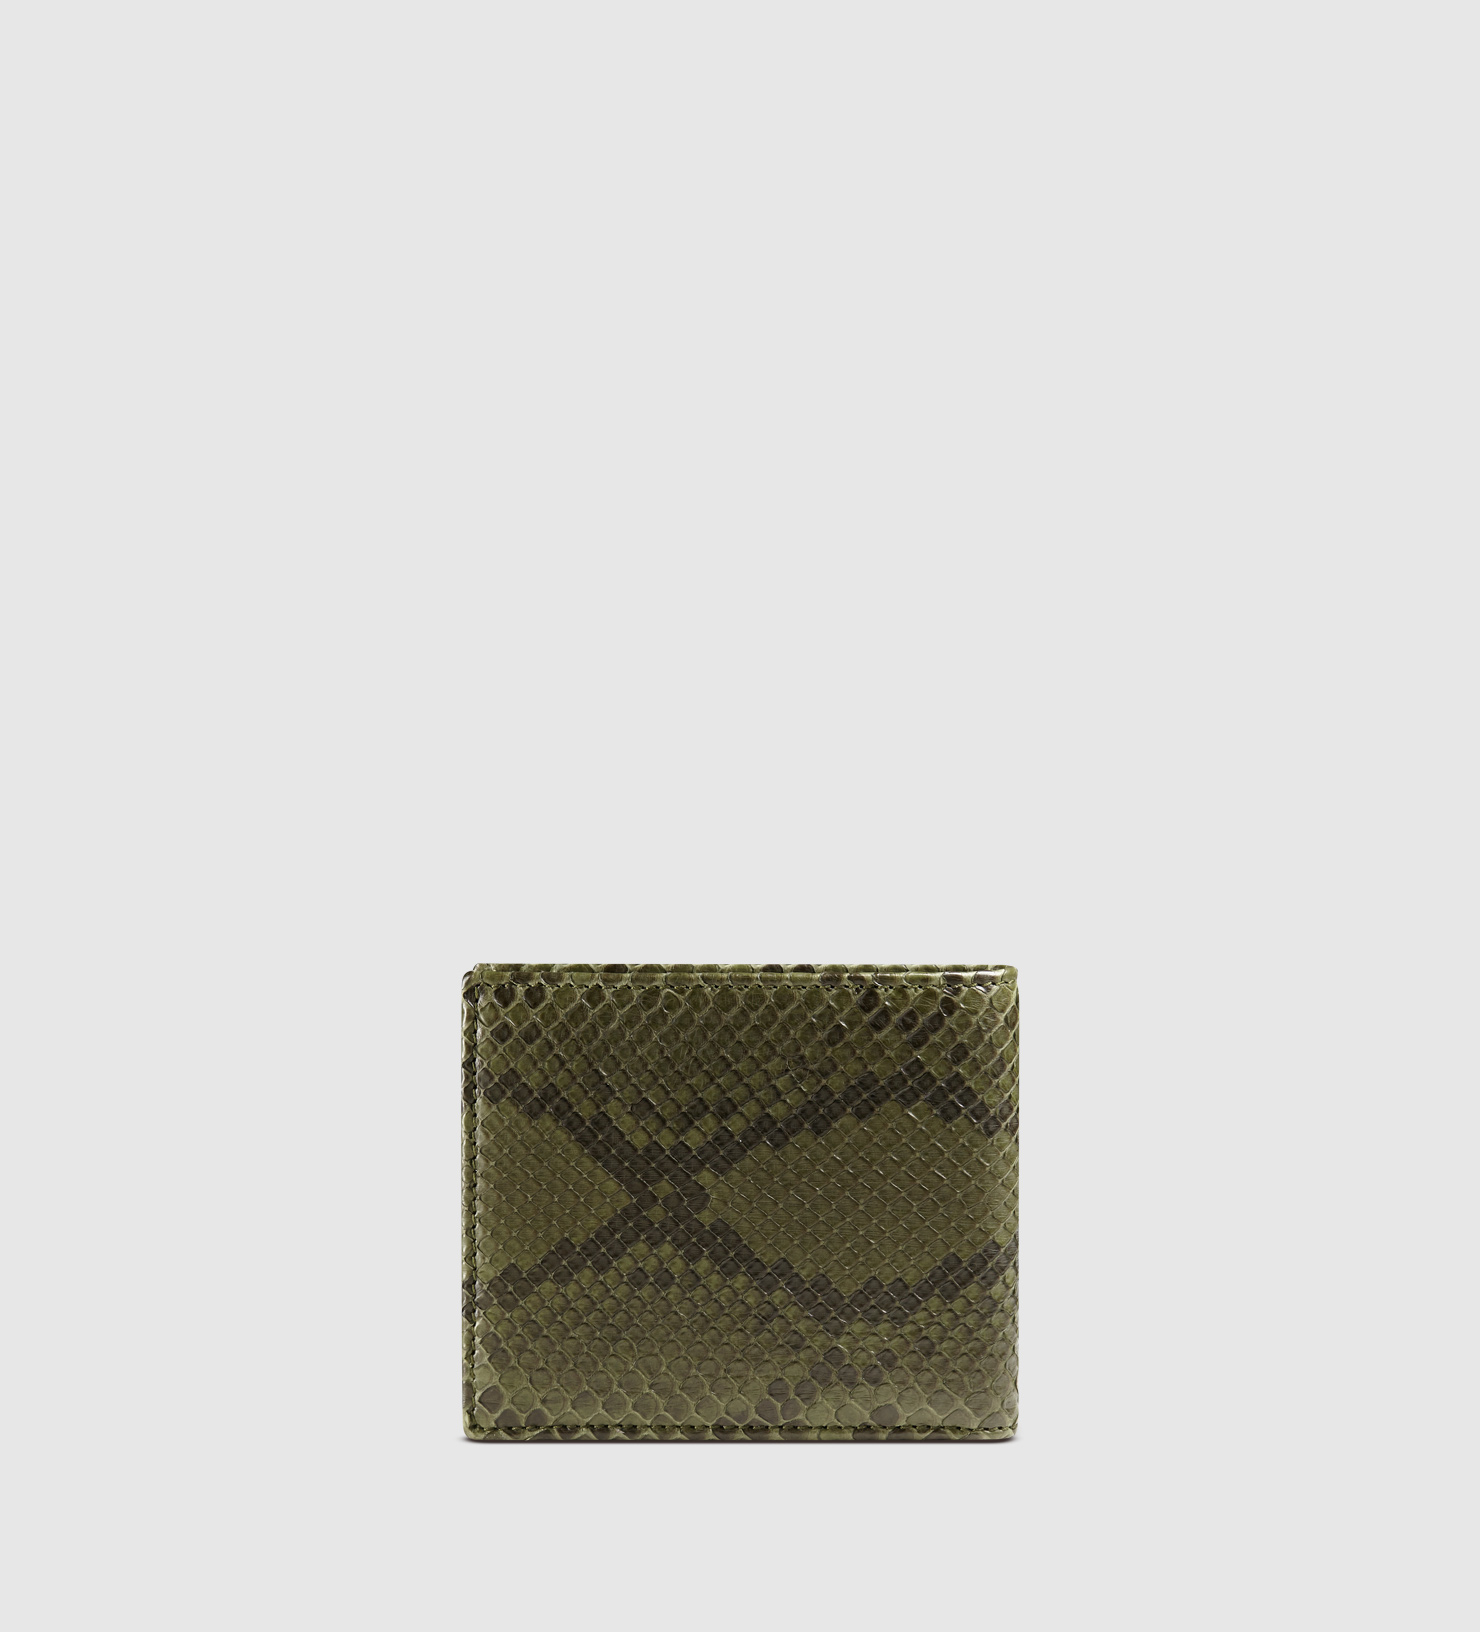 f4231c58c319 Gucci Python Wallet Mens | Stanford Center for Opportunity Policy in ...